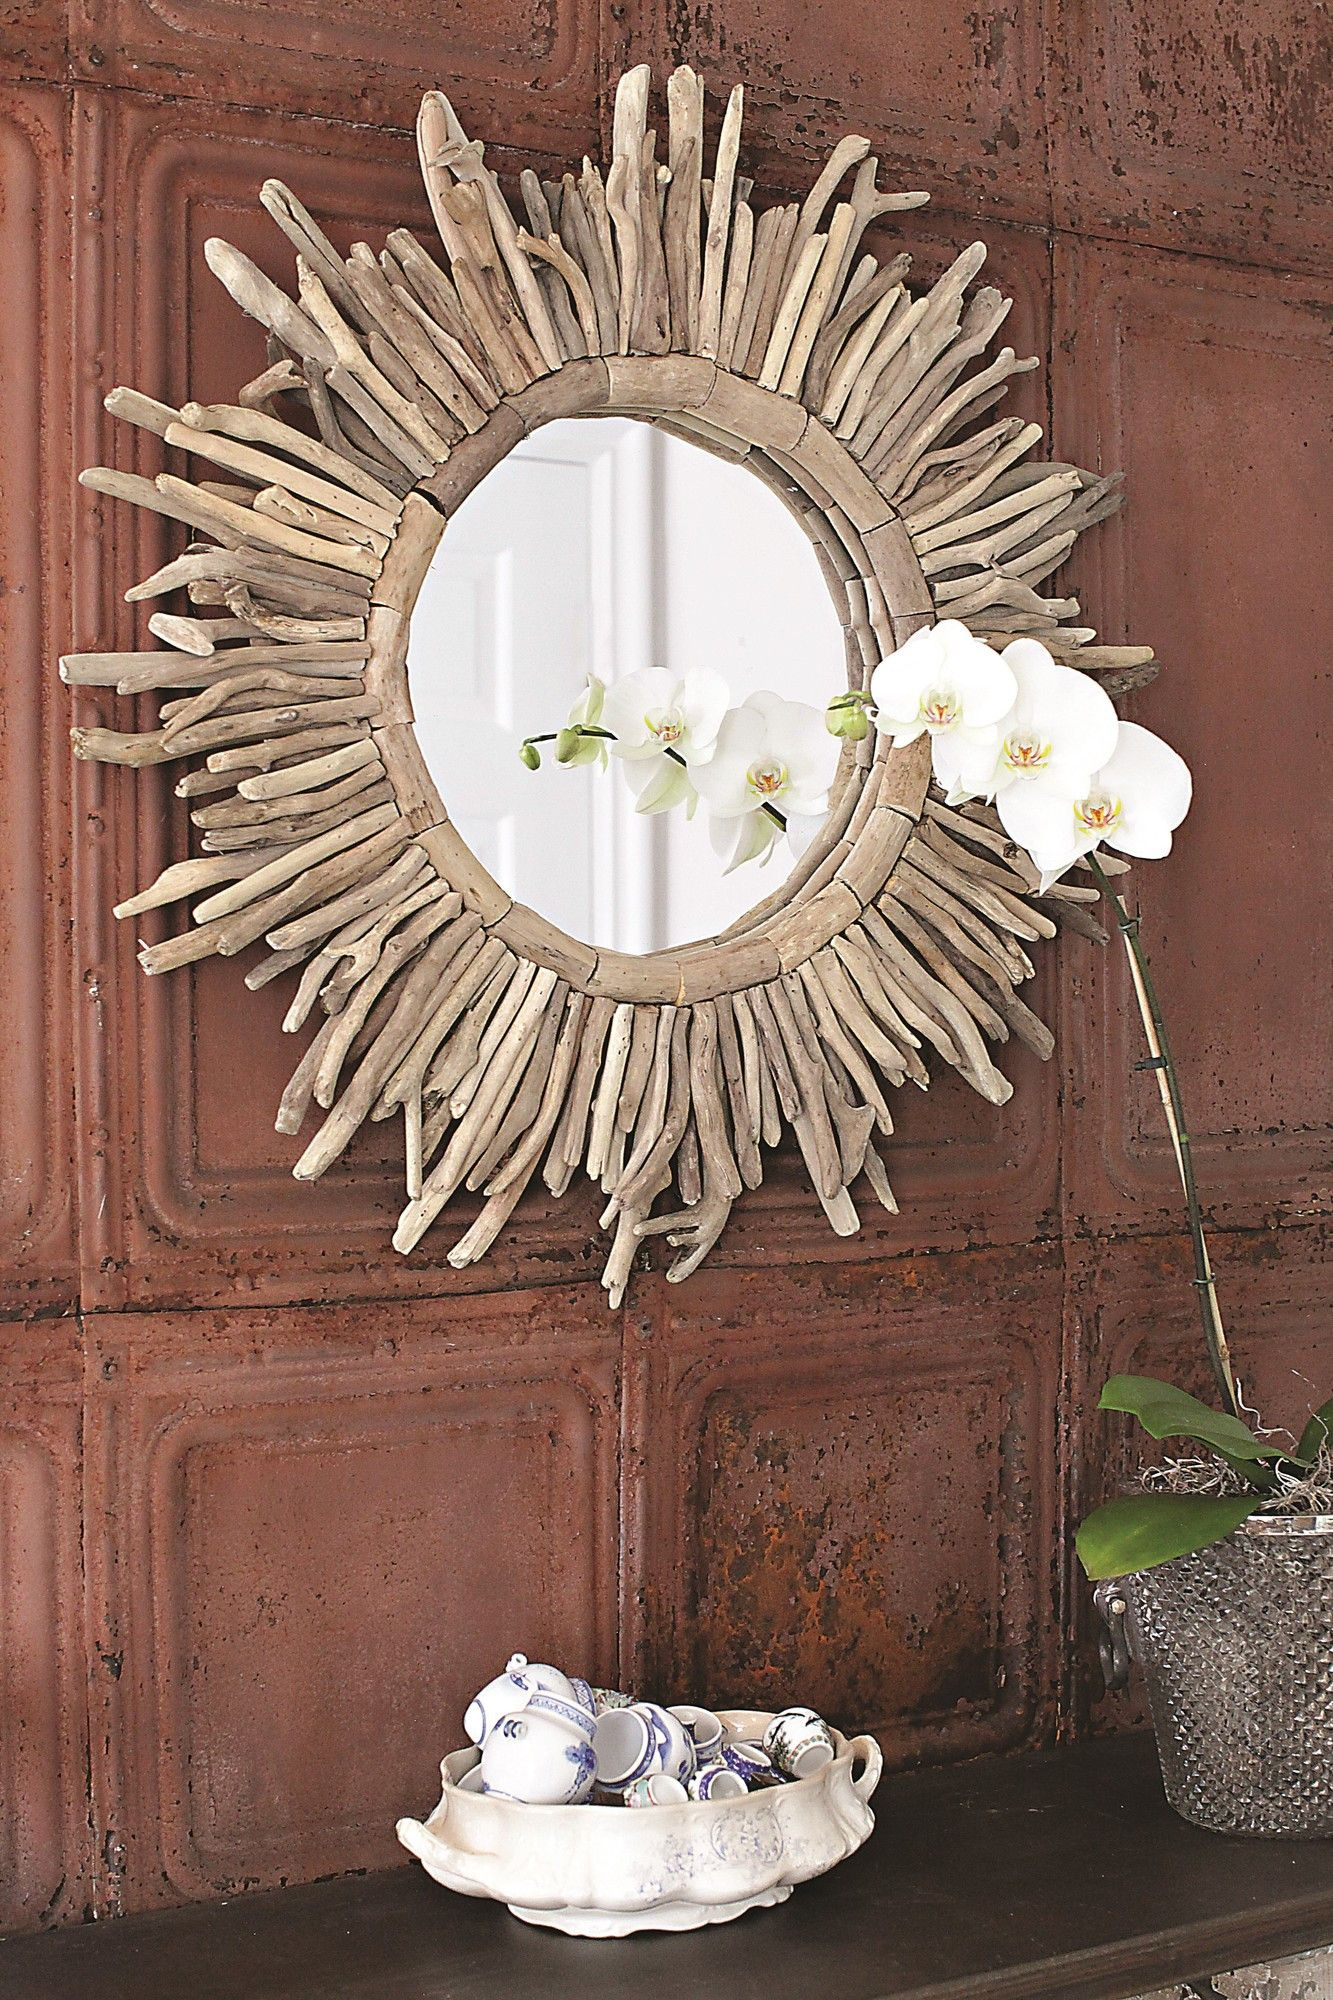 DETAILS Create an eye-catching focal point in your living room or master suite with this stylish round wall mirror, showcasing a sunburst-inspired design. Pr